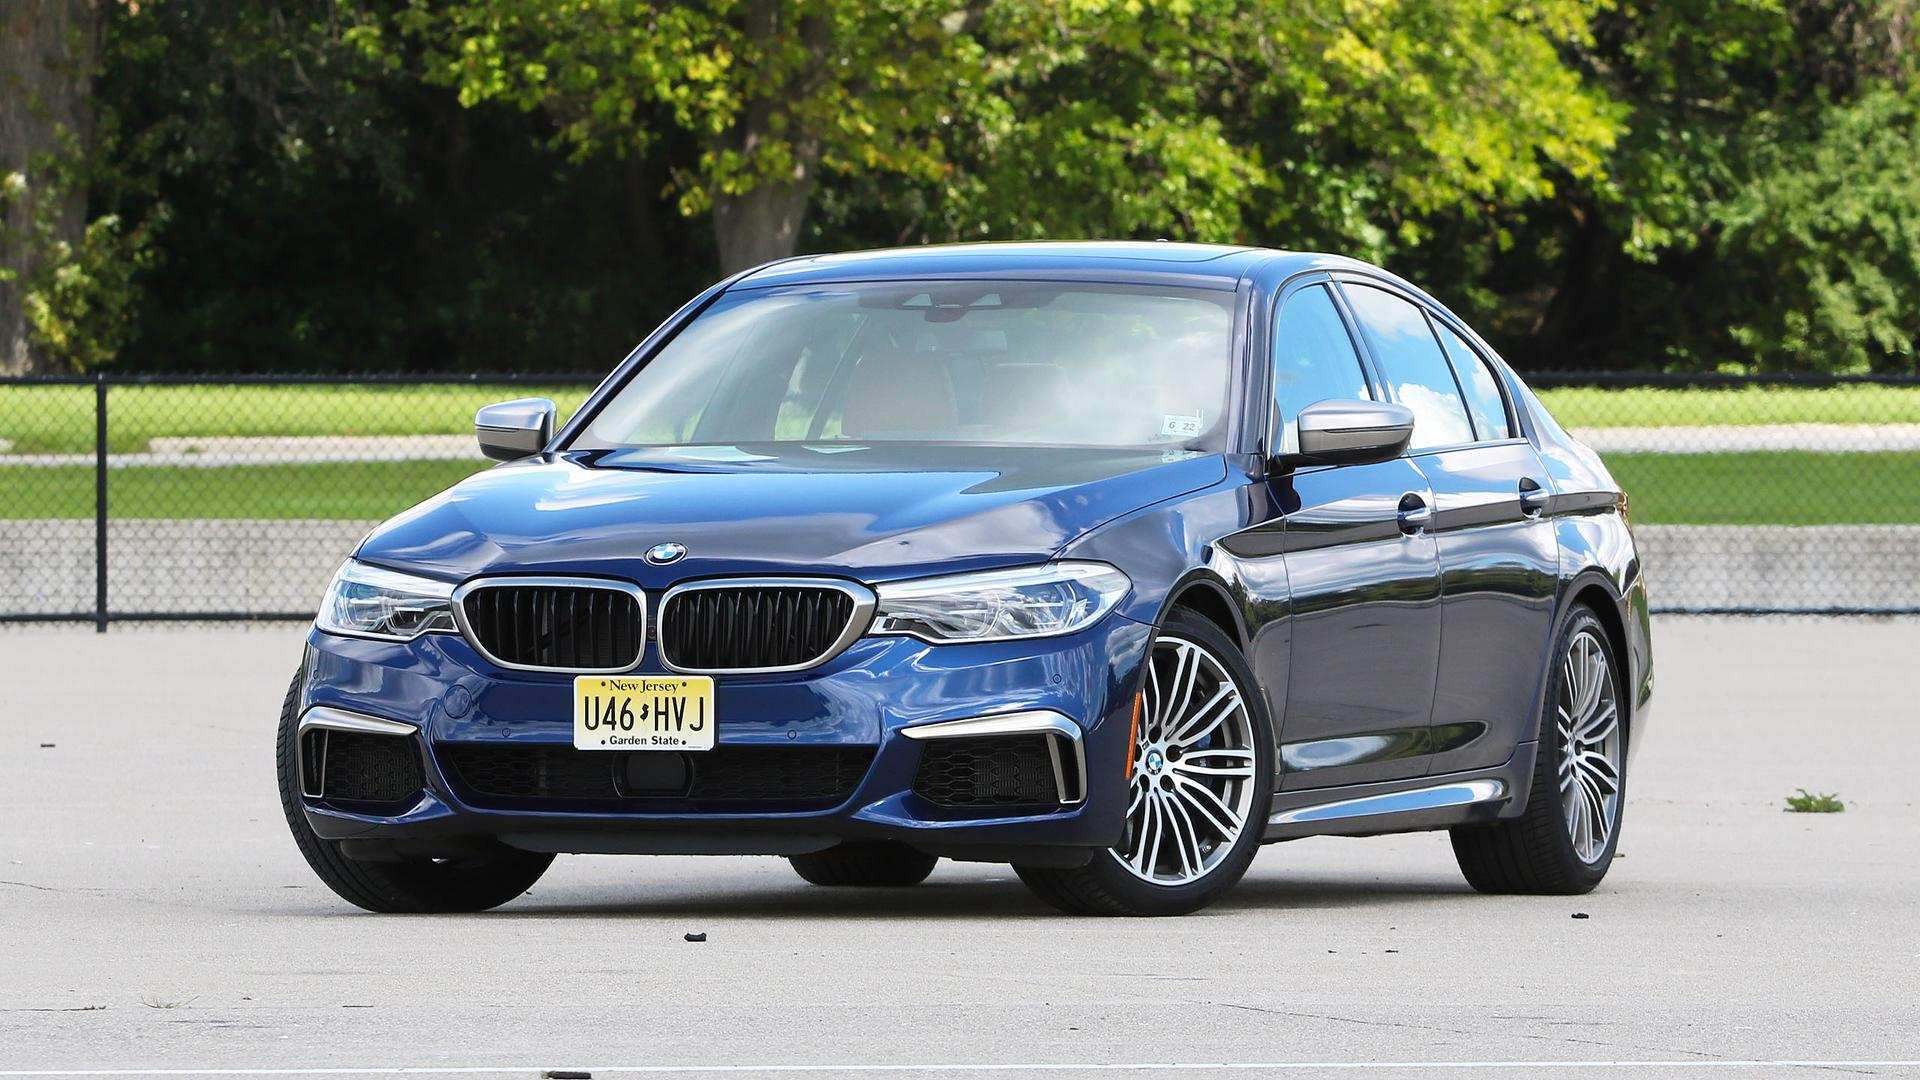 43 All New 2020 Bmw Engines Price Design And Review